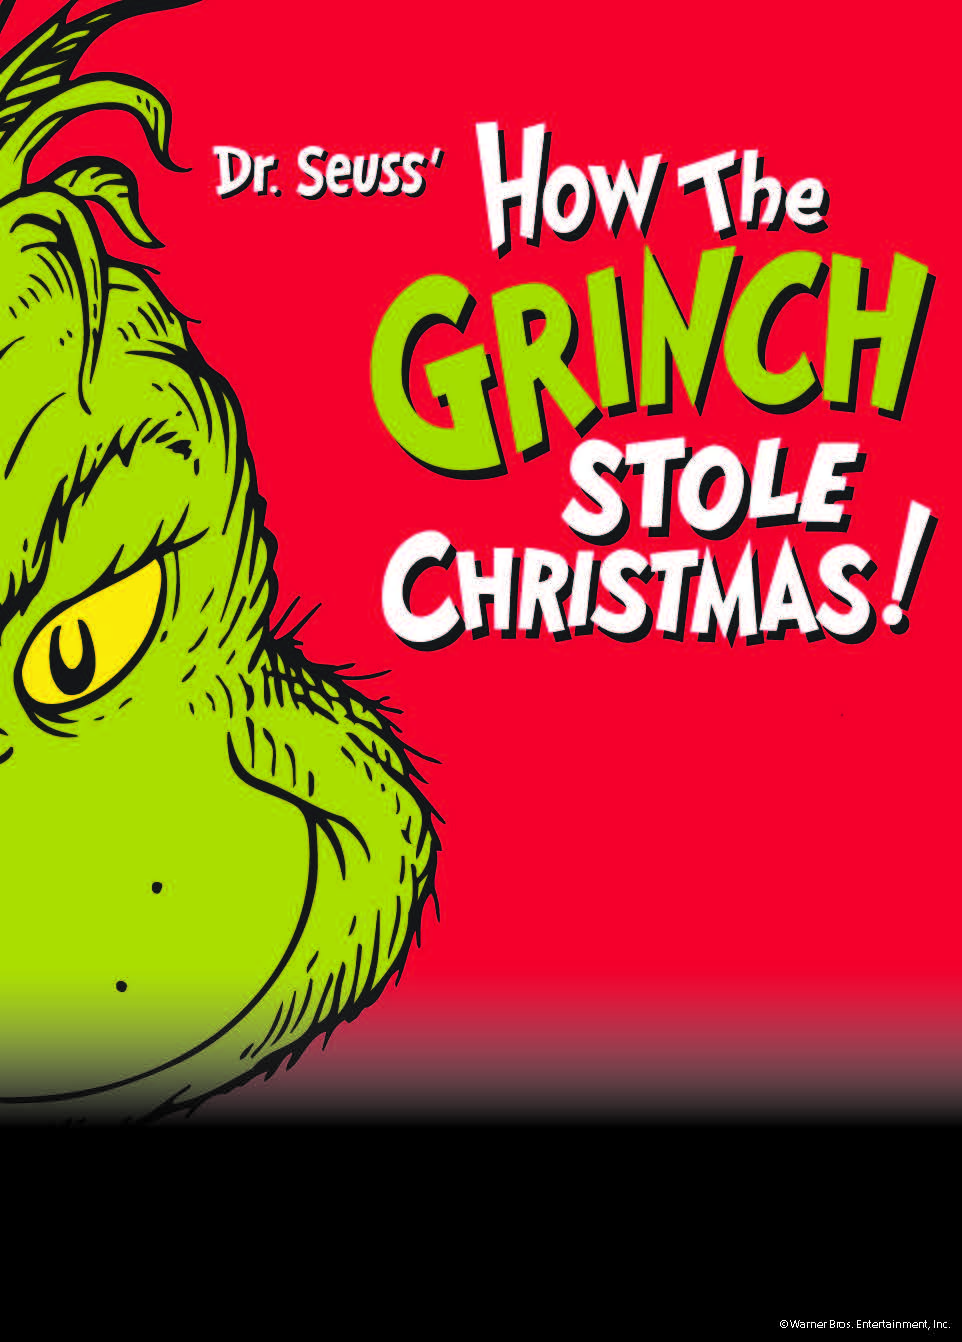 How The Grinch Stole Christmas 1966 Movie Poster.Movie And Tv Show Licensing From Swank Motion Pictures